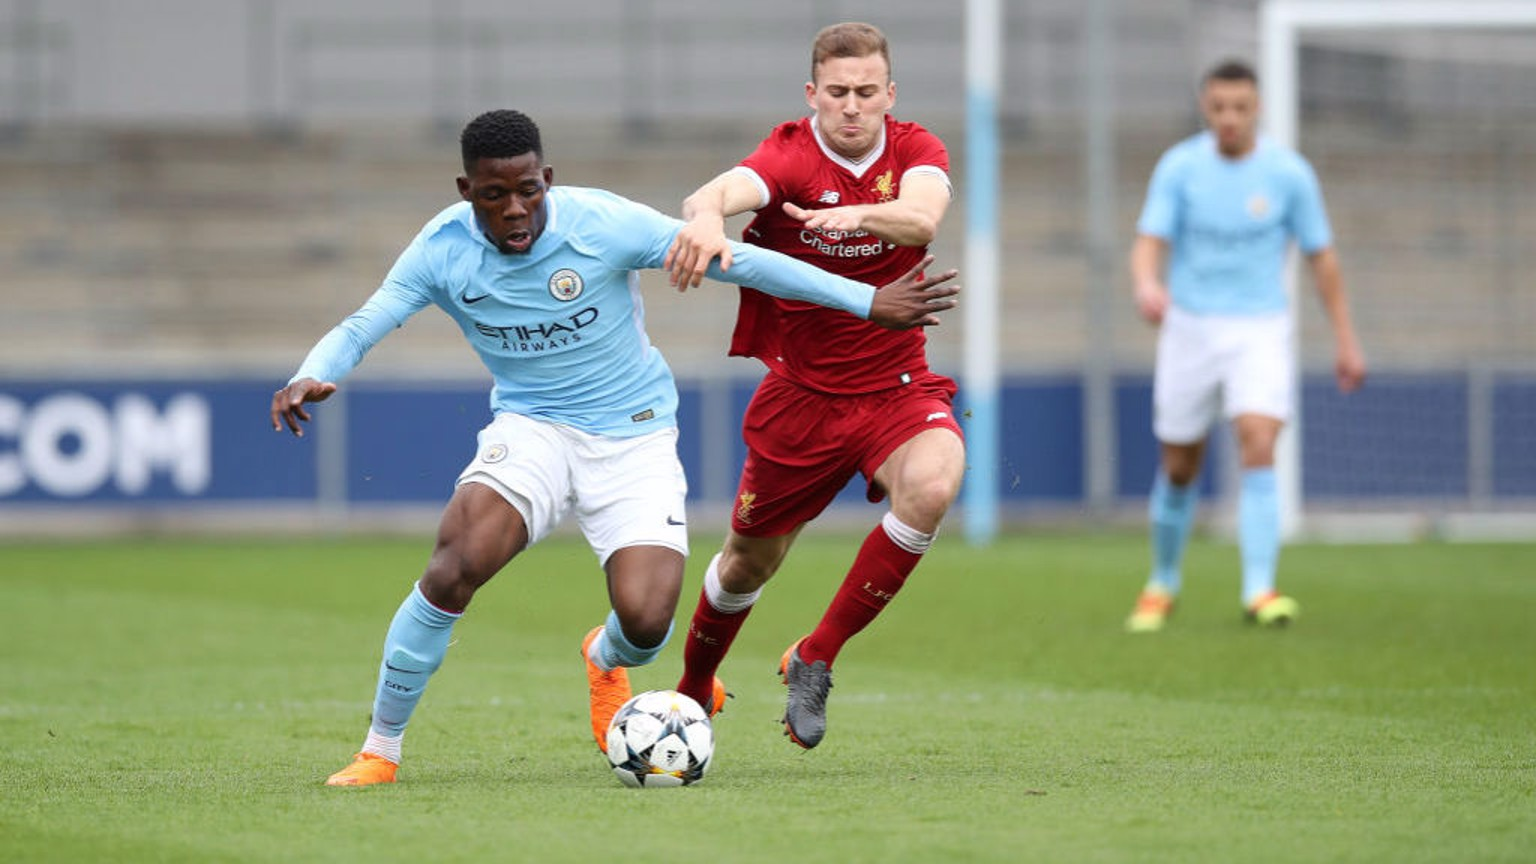 City reach UYL semi-finals after shoot-out win